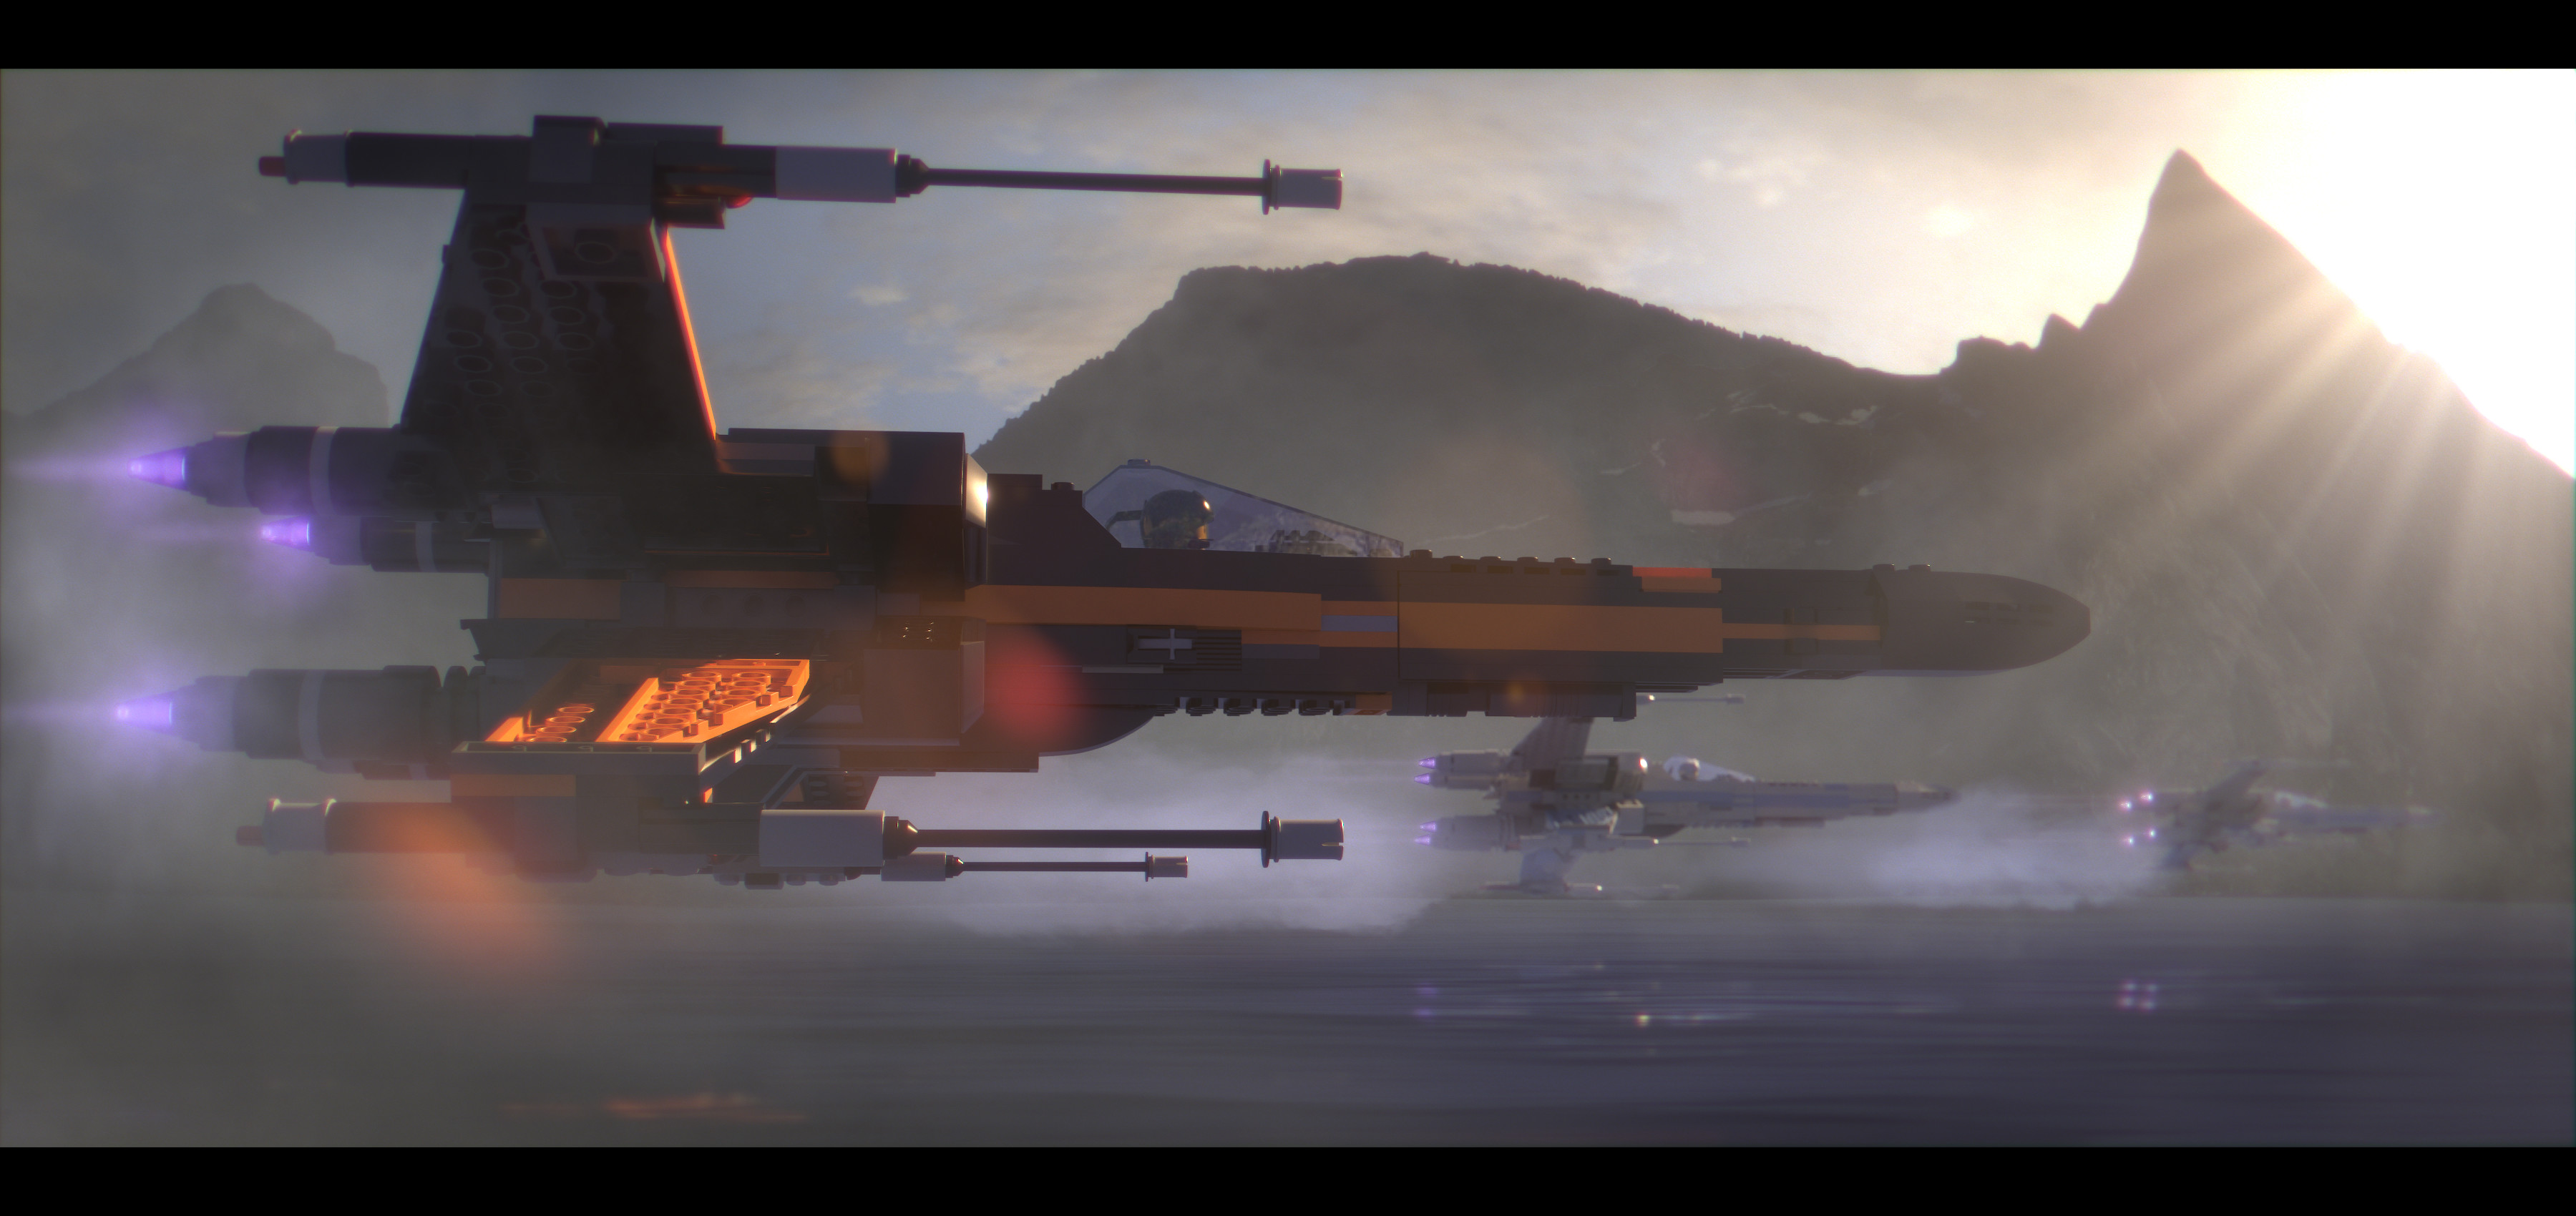 3600x1700 General  Star Wars LEGO Star Wars X-wing spaceship LEGO LEGO Star  Wars The